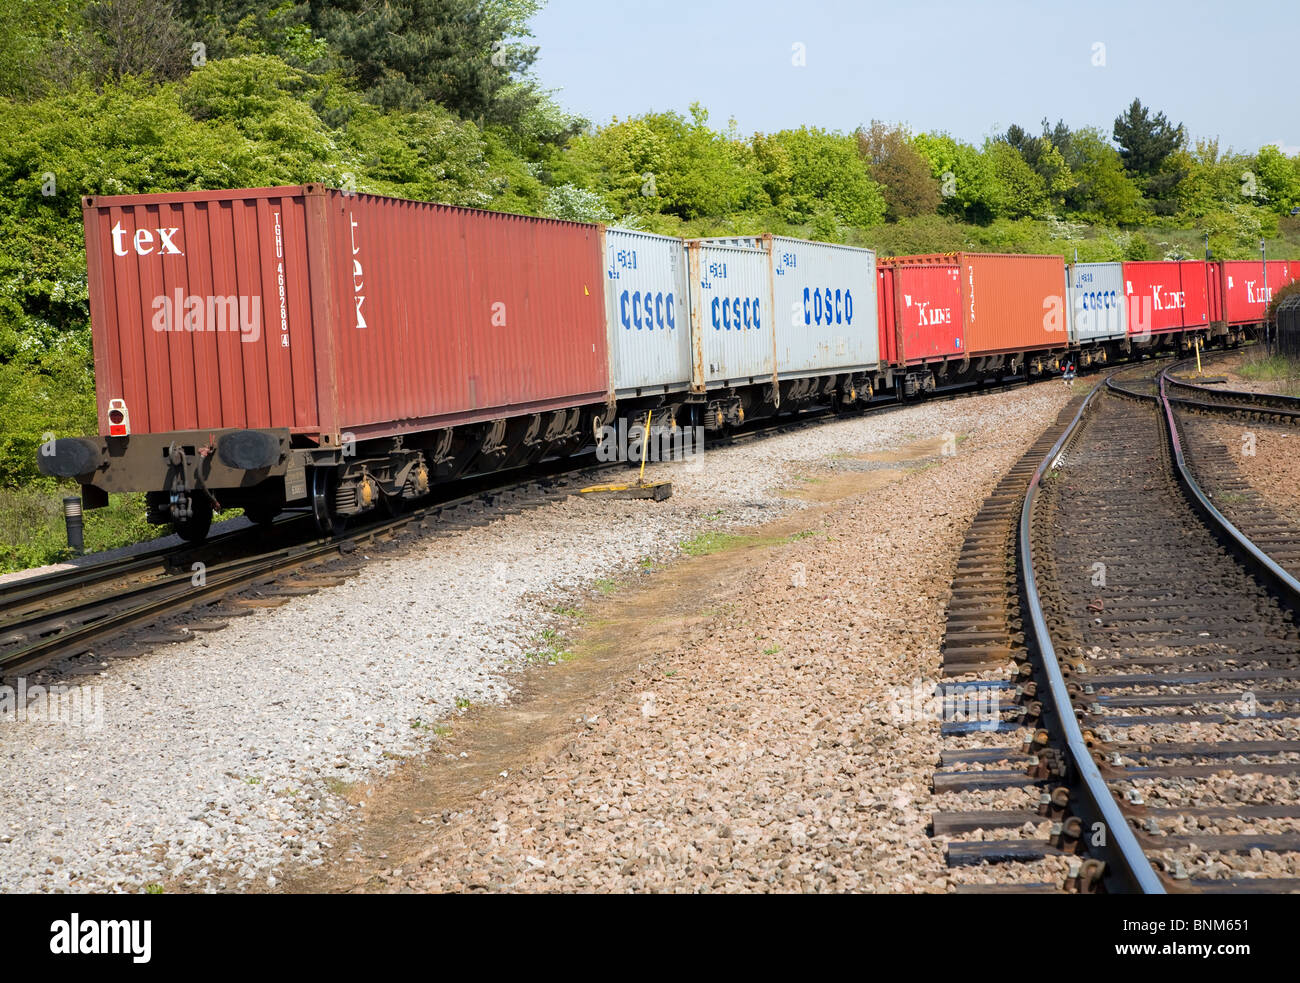 Railway freight train carrying containers rail lines rear view - Stock Image